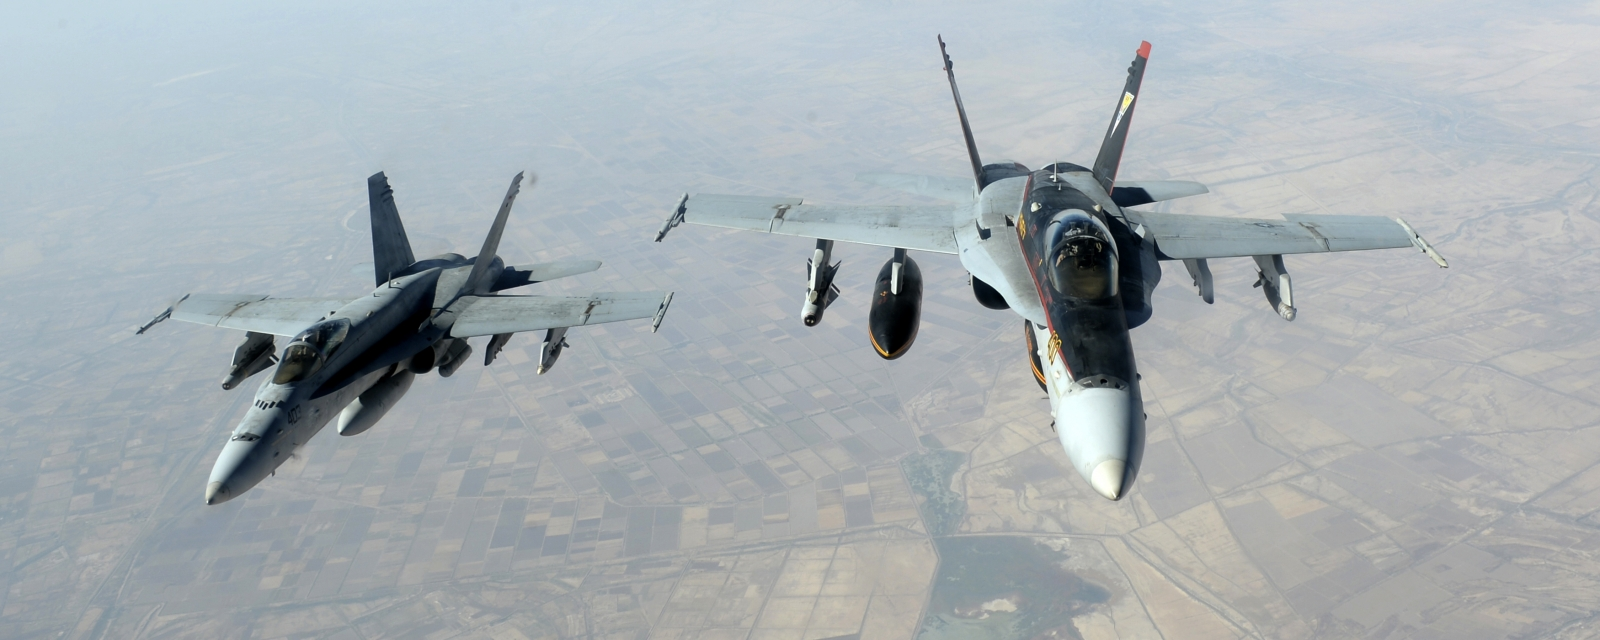 US Navy F-18E Super Hornet ISIS ISIL